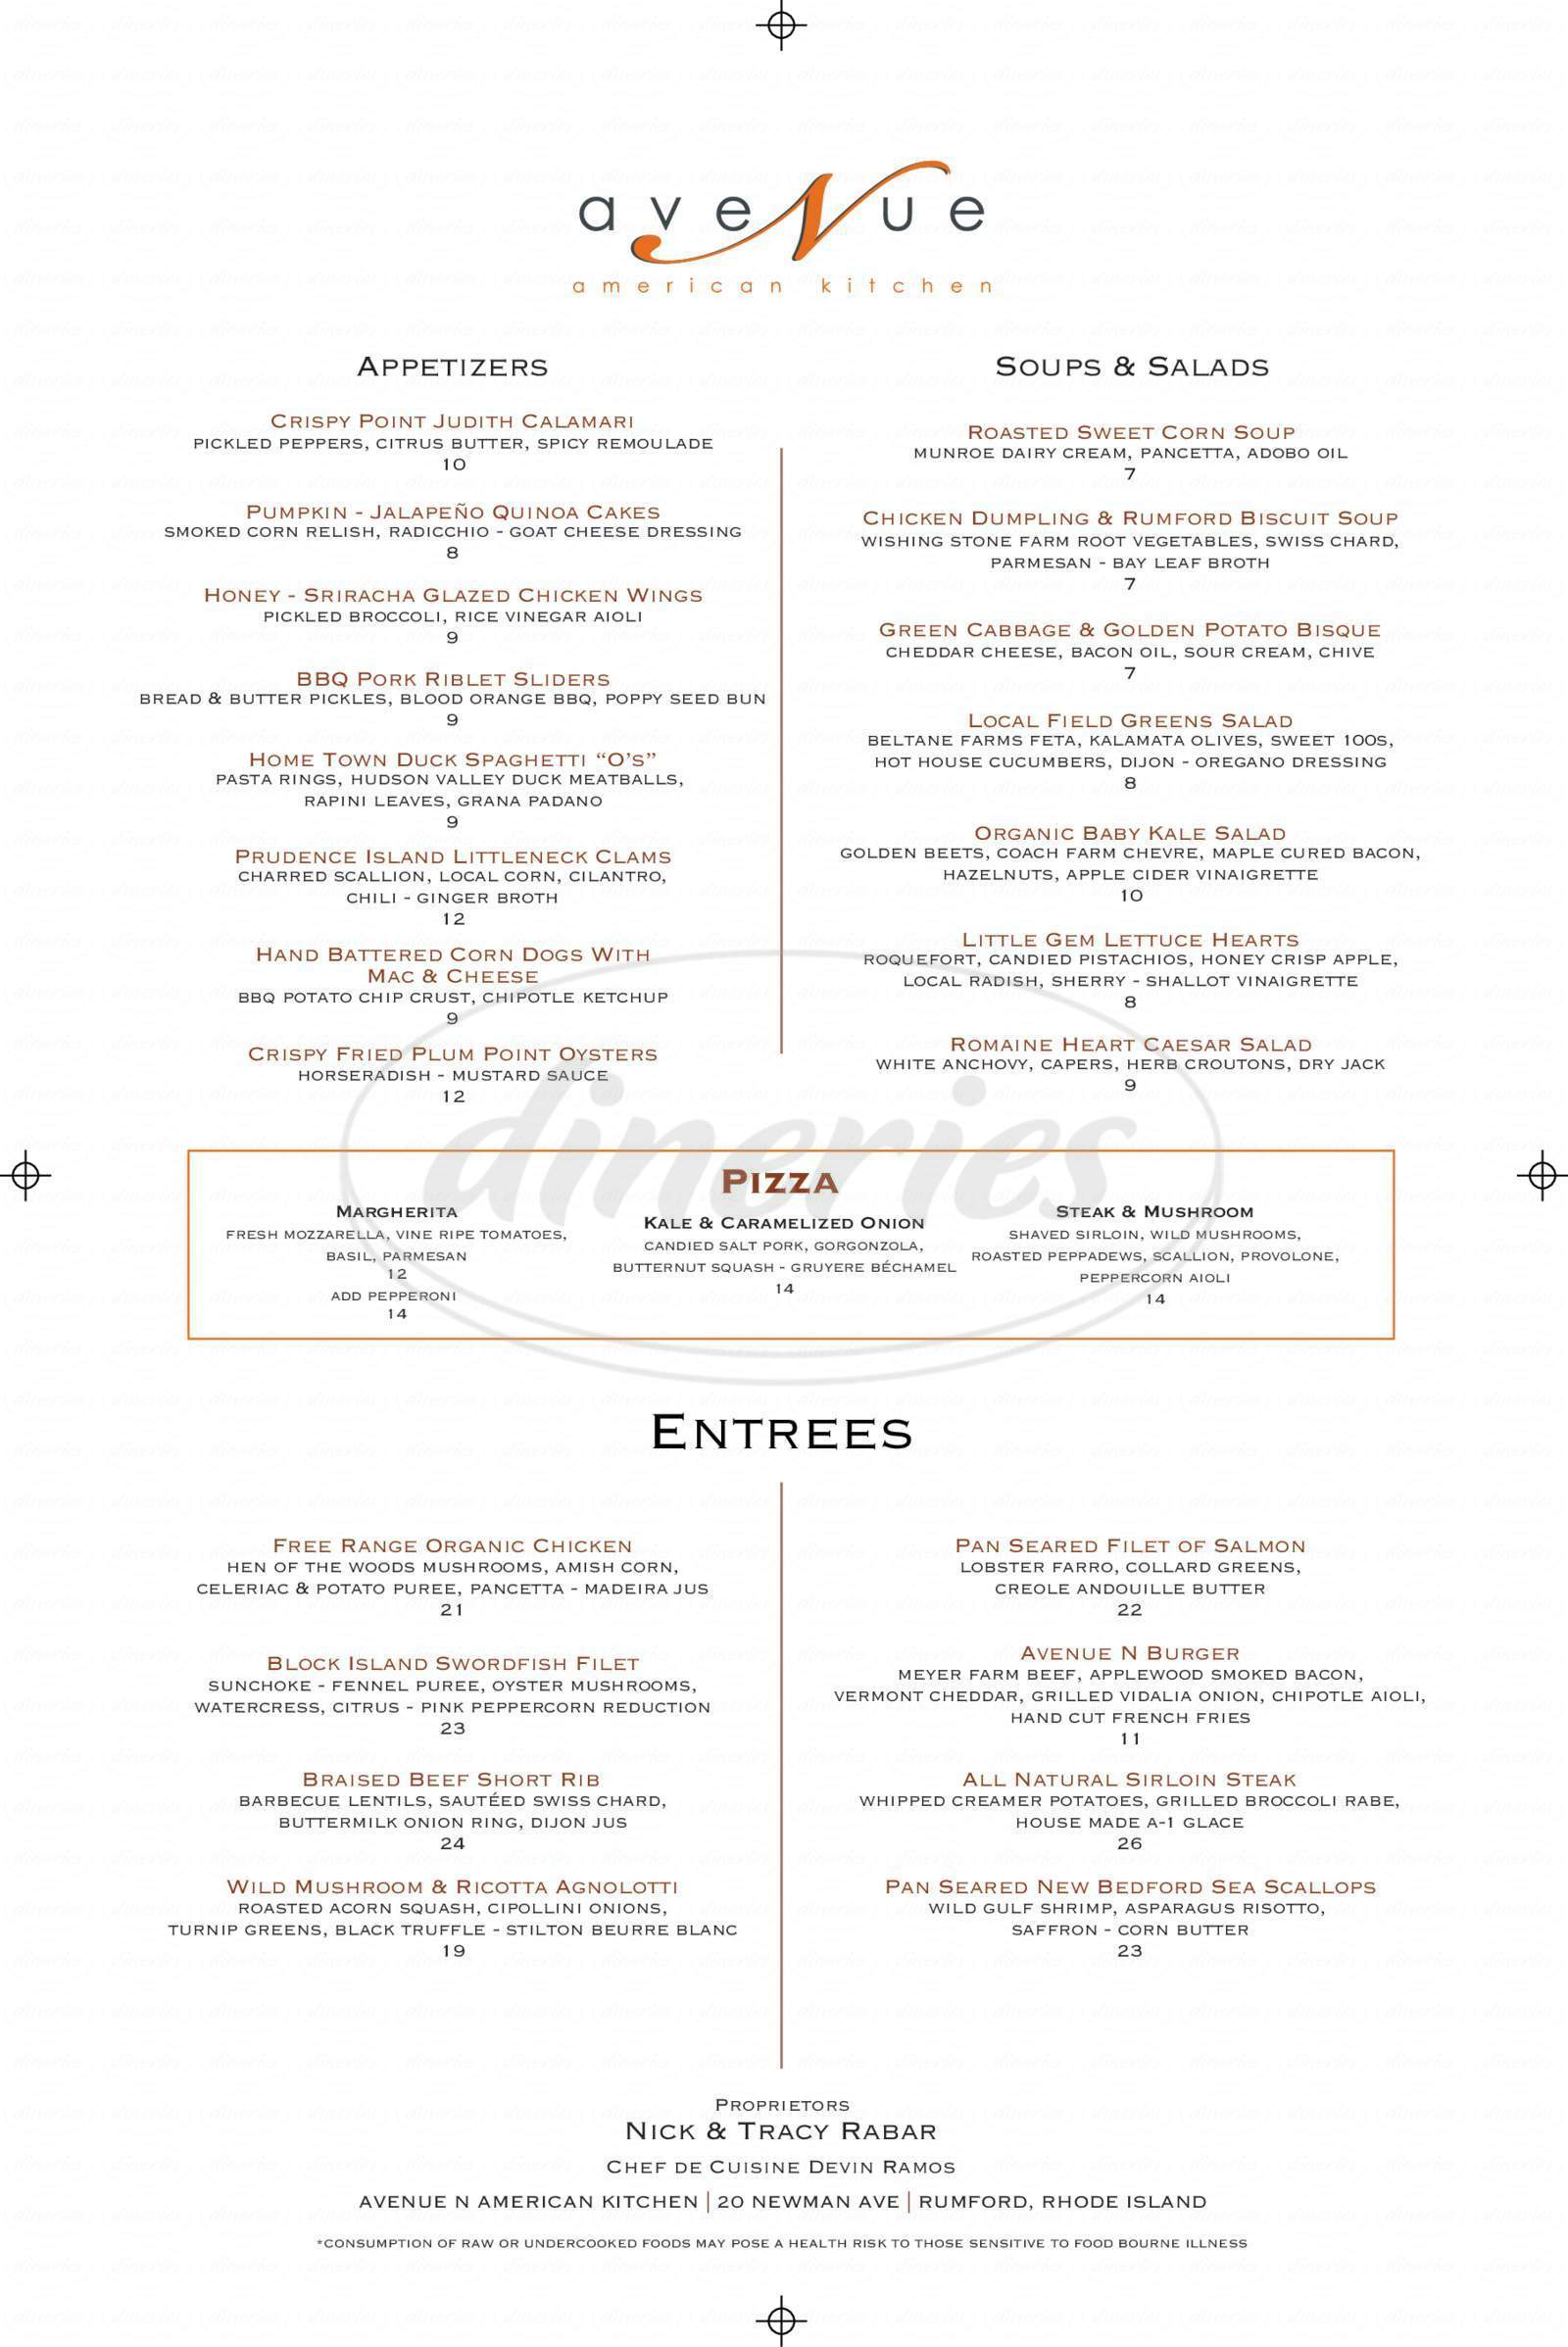 menu for Avenue N